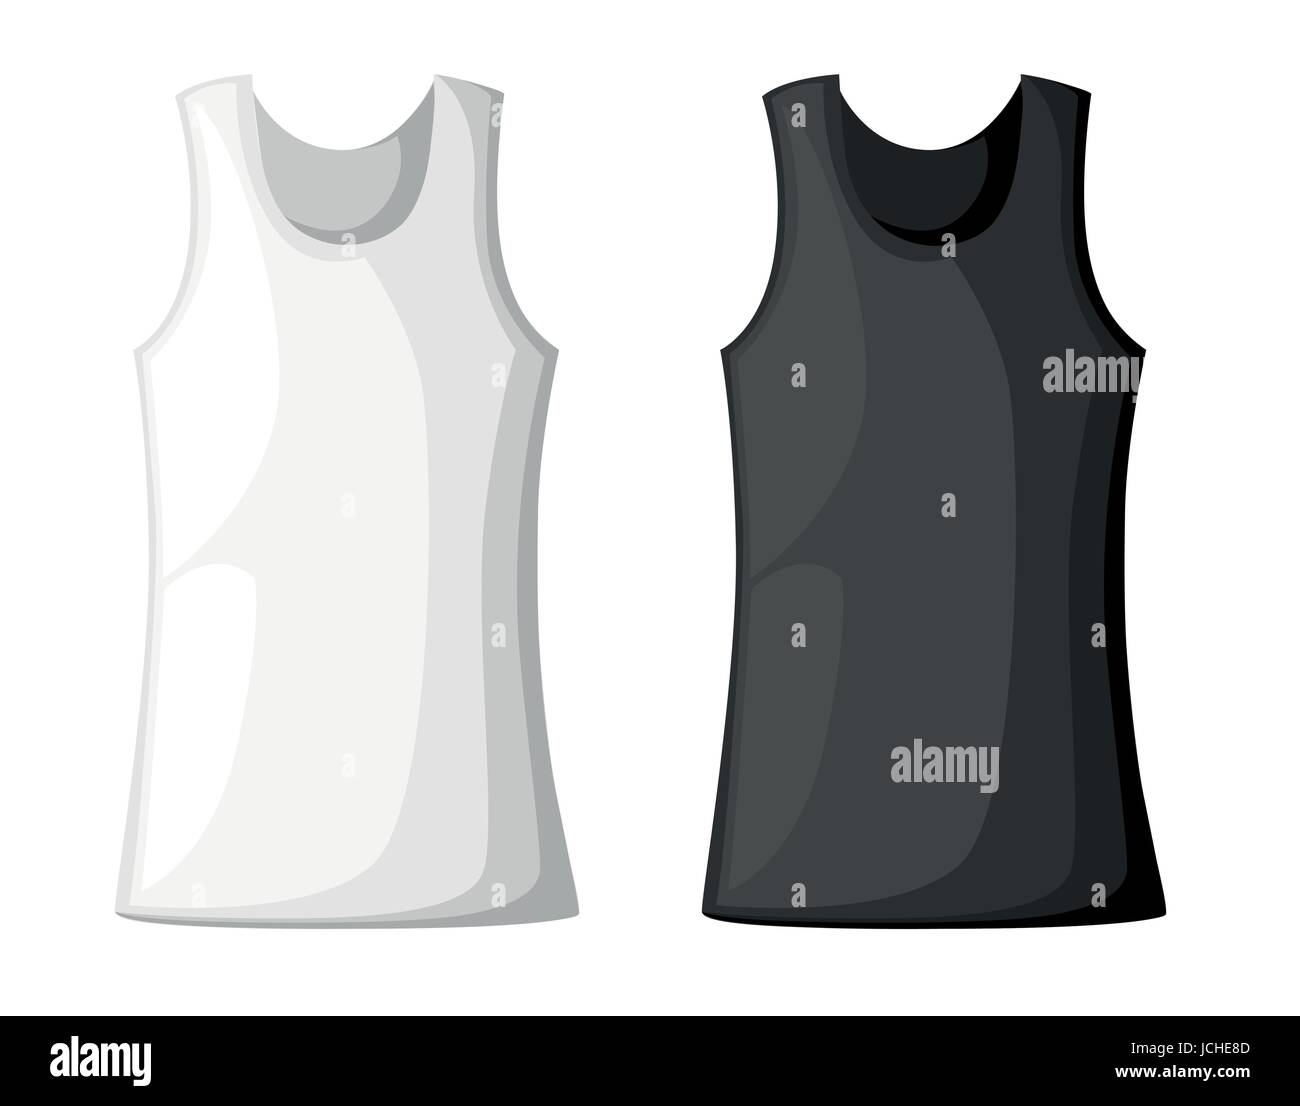 Vector illustration with realistic male shirt template womans vector illustration with realistic male shirt template womans white sleeveless tank top in front and back views mock up for prints or logo design pronofoot35fo Images